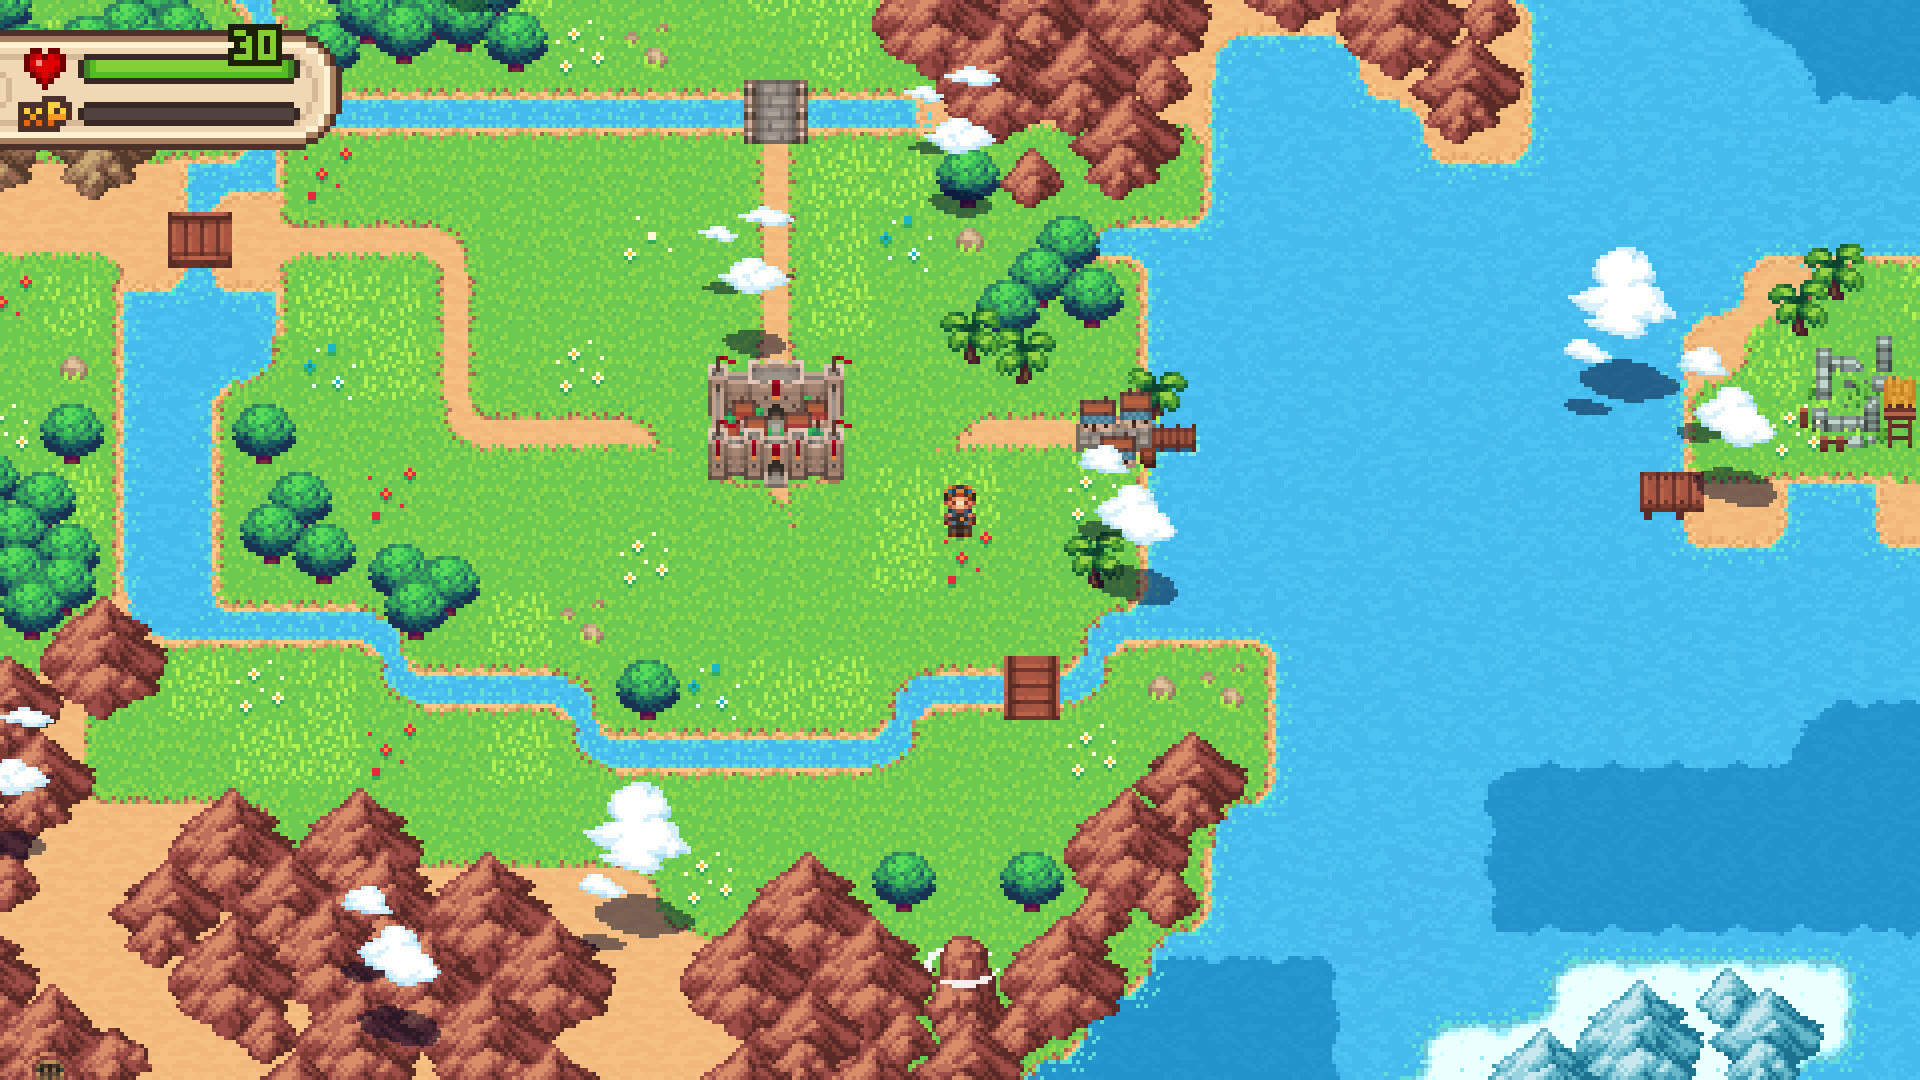 Evoland 2 (Steam Key, GLOBAL)